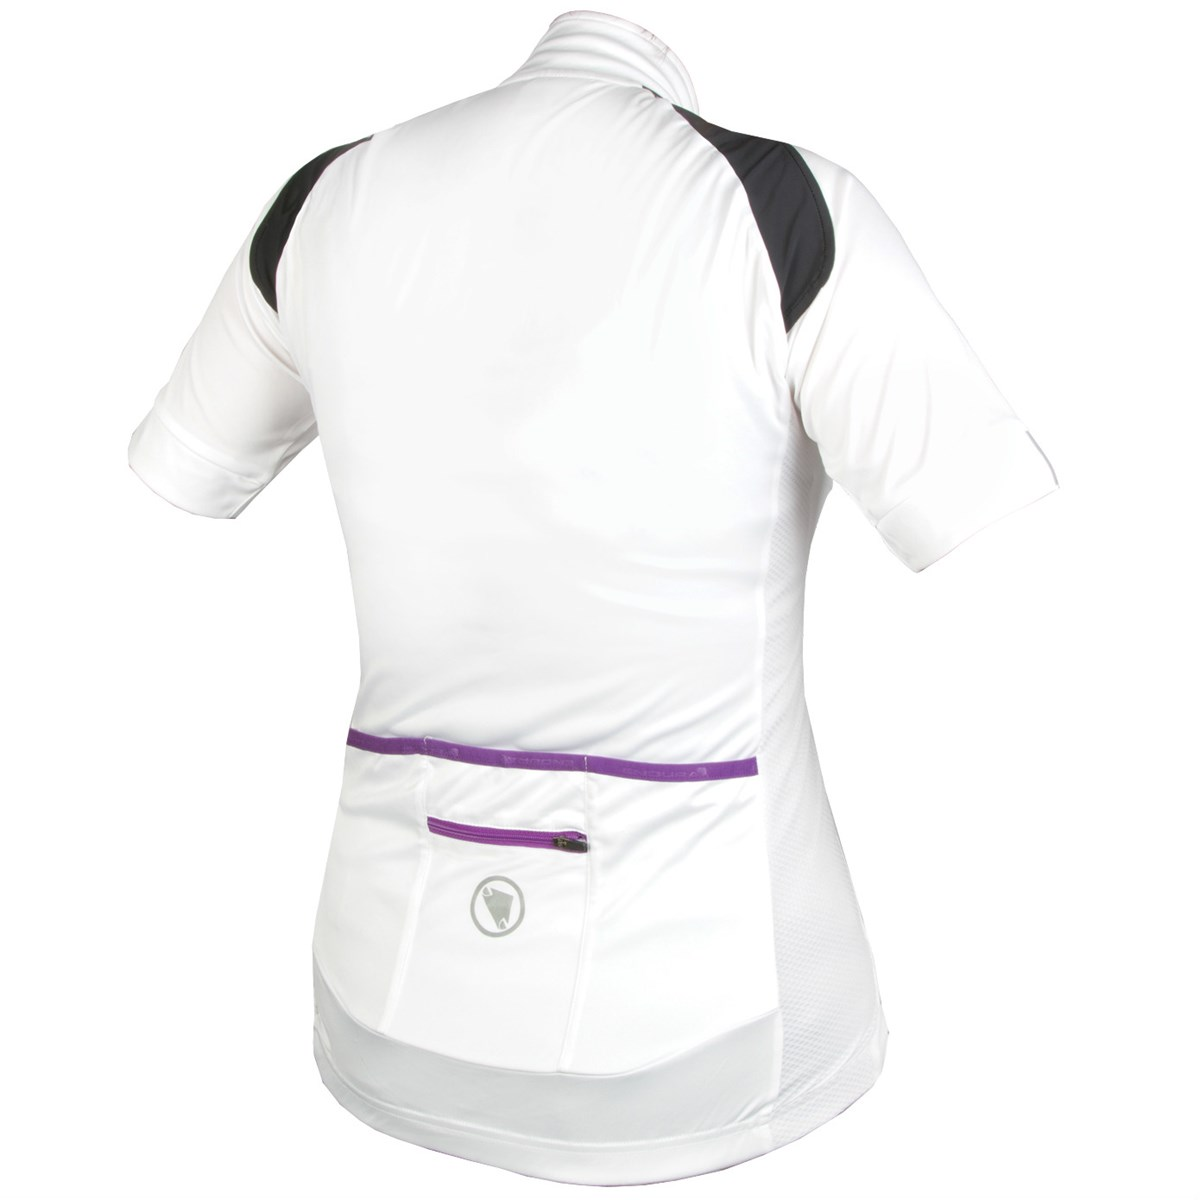 Endura Womens Hyperon White Short Sleeve Cycling Jersey £42.99 bf21852a5